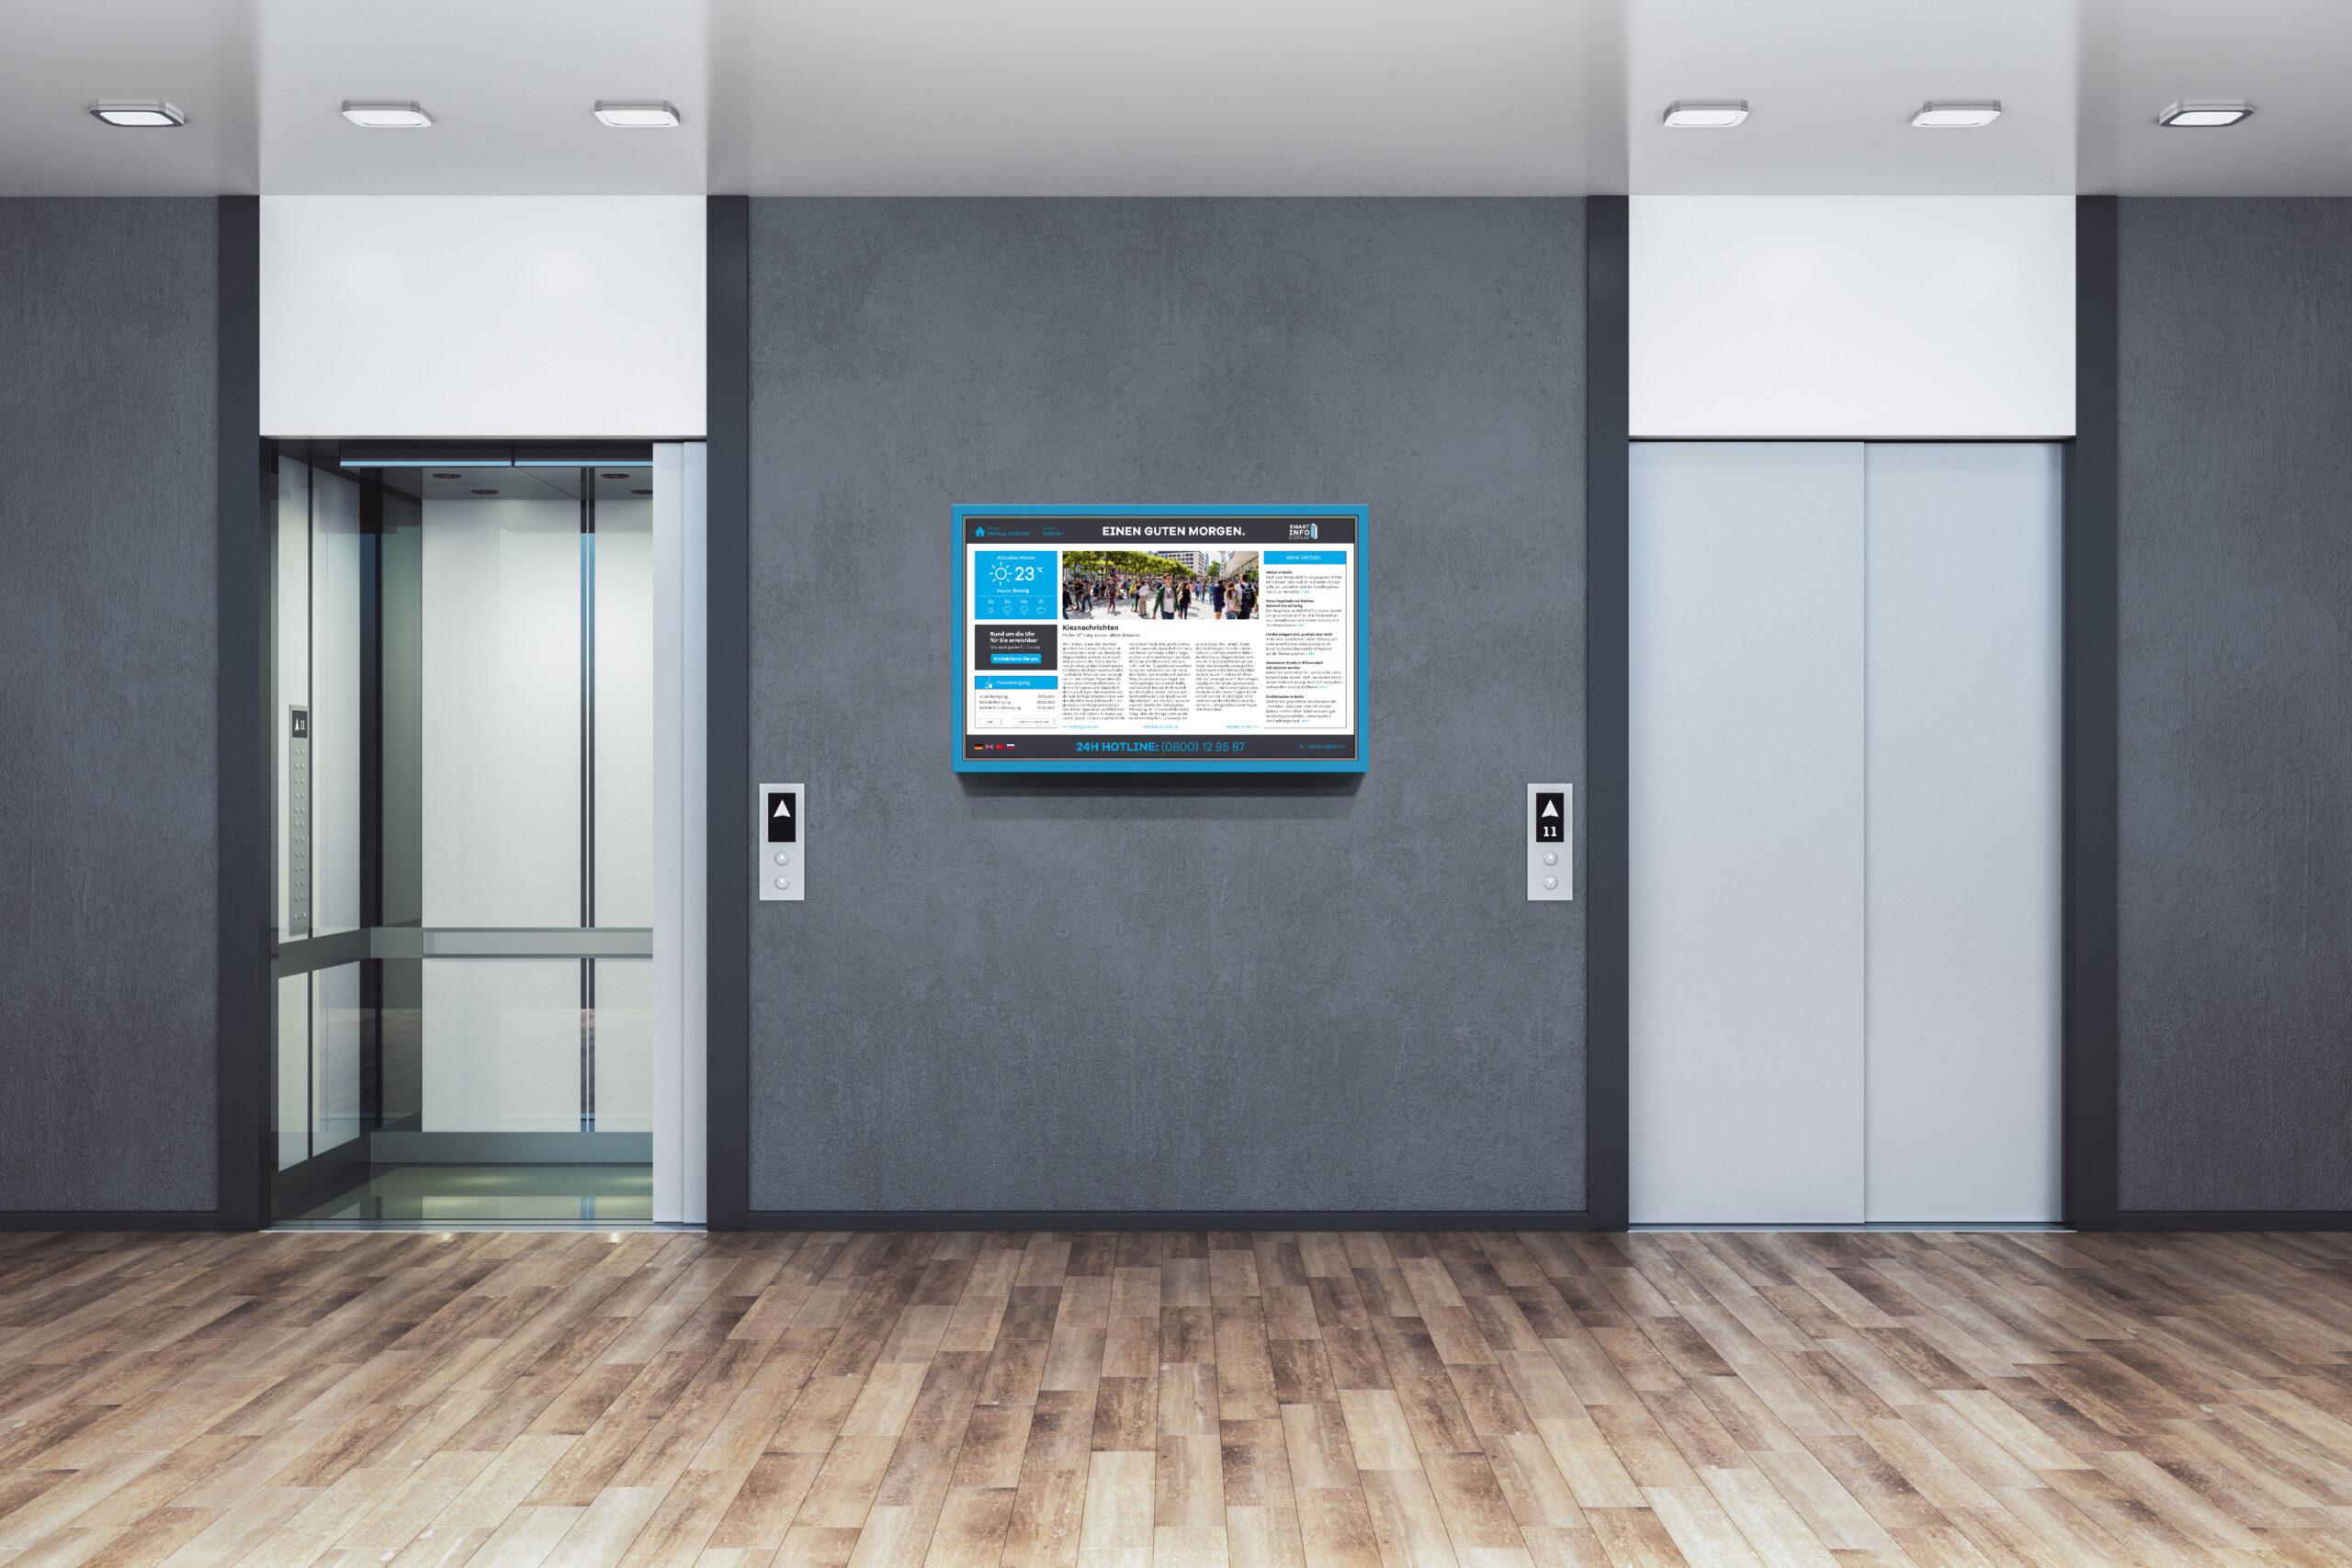 Contemporary office interior with two elevator. Startup and entrepreneurship concept. 3D Rendering